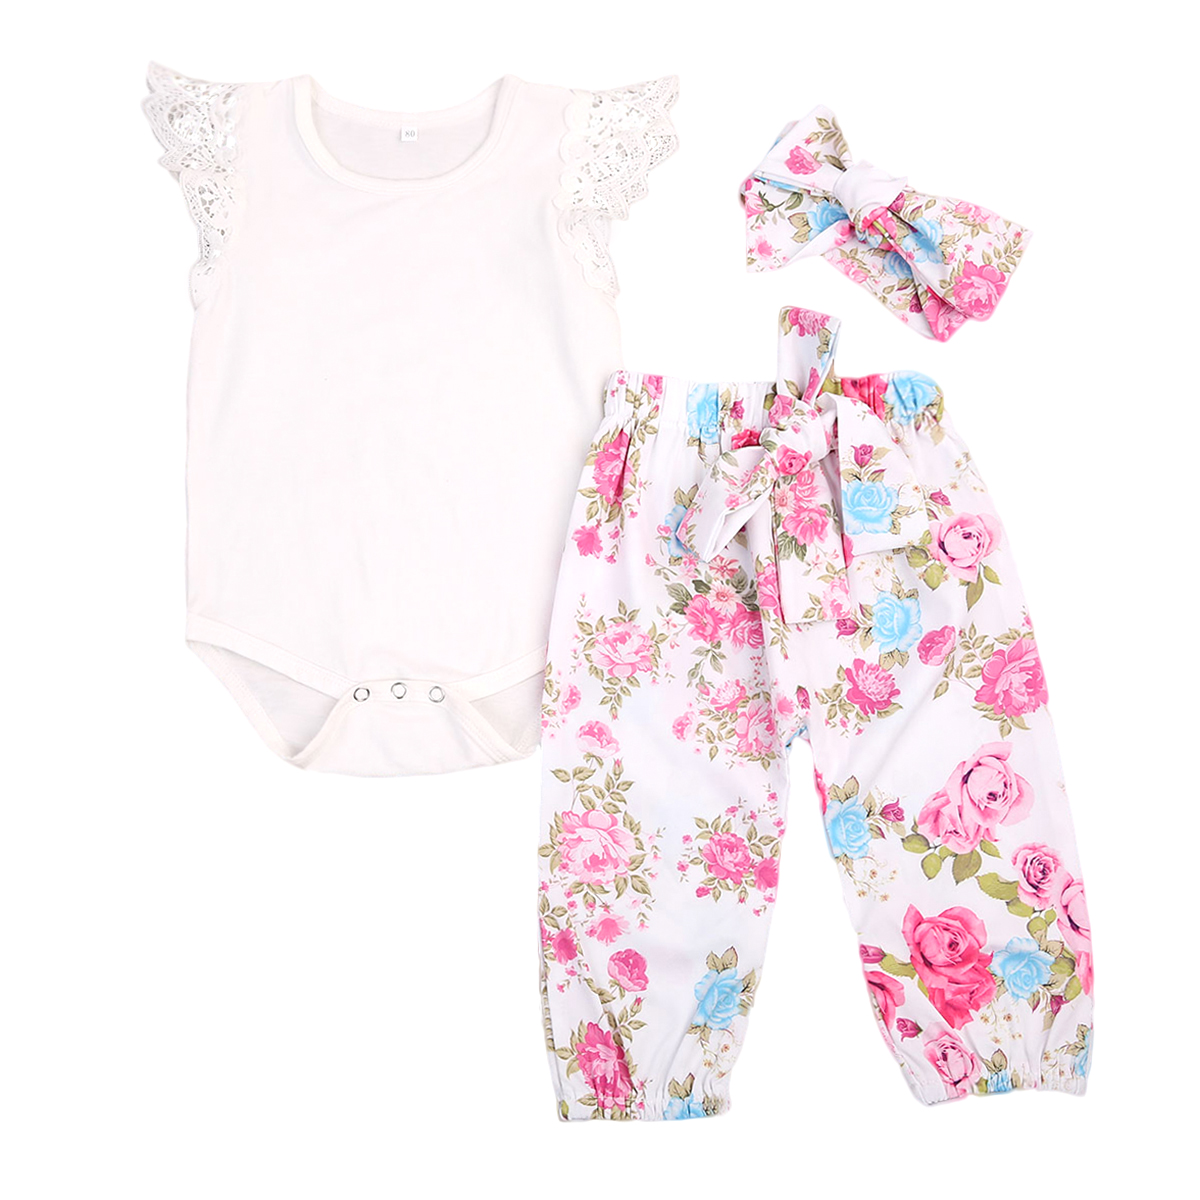 US Stock Floral Newborn Baby Girls Lace Romper Pants Headband Outfit Set Clothes Infant Toddler Girl Brief Clothing Set Playsuit newborn infant baby clothes girl lace strap floral romper jumpsuit headband 2pcs summer baby girl romper clothes baby onesie